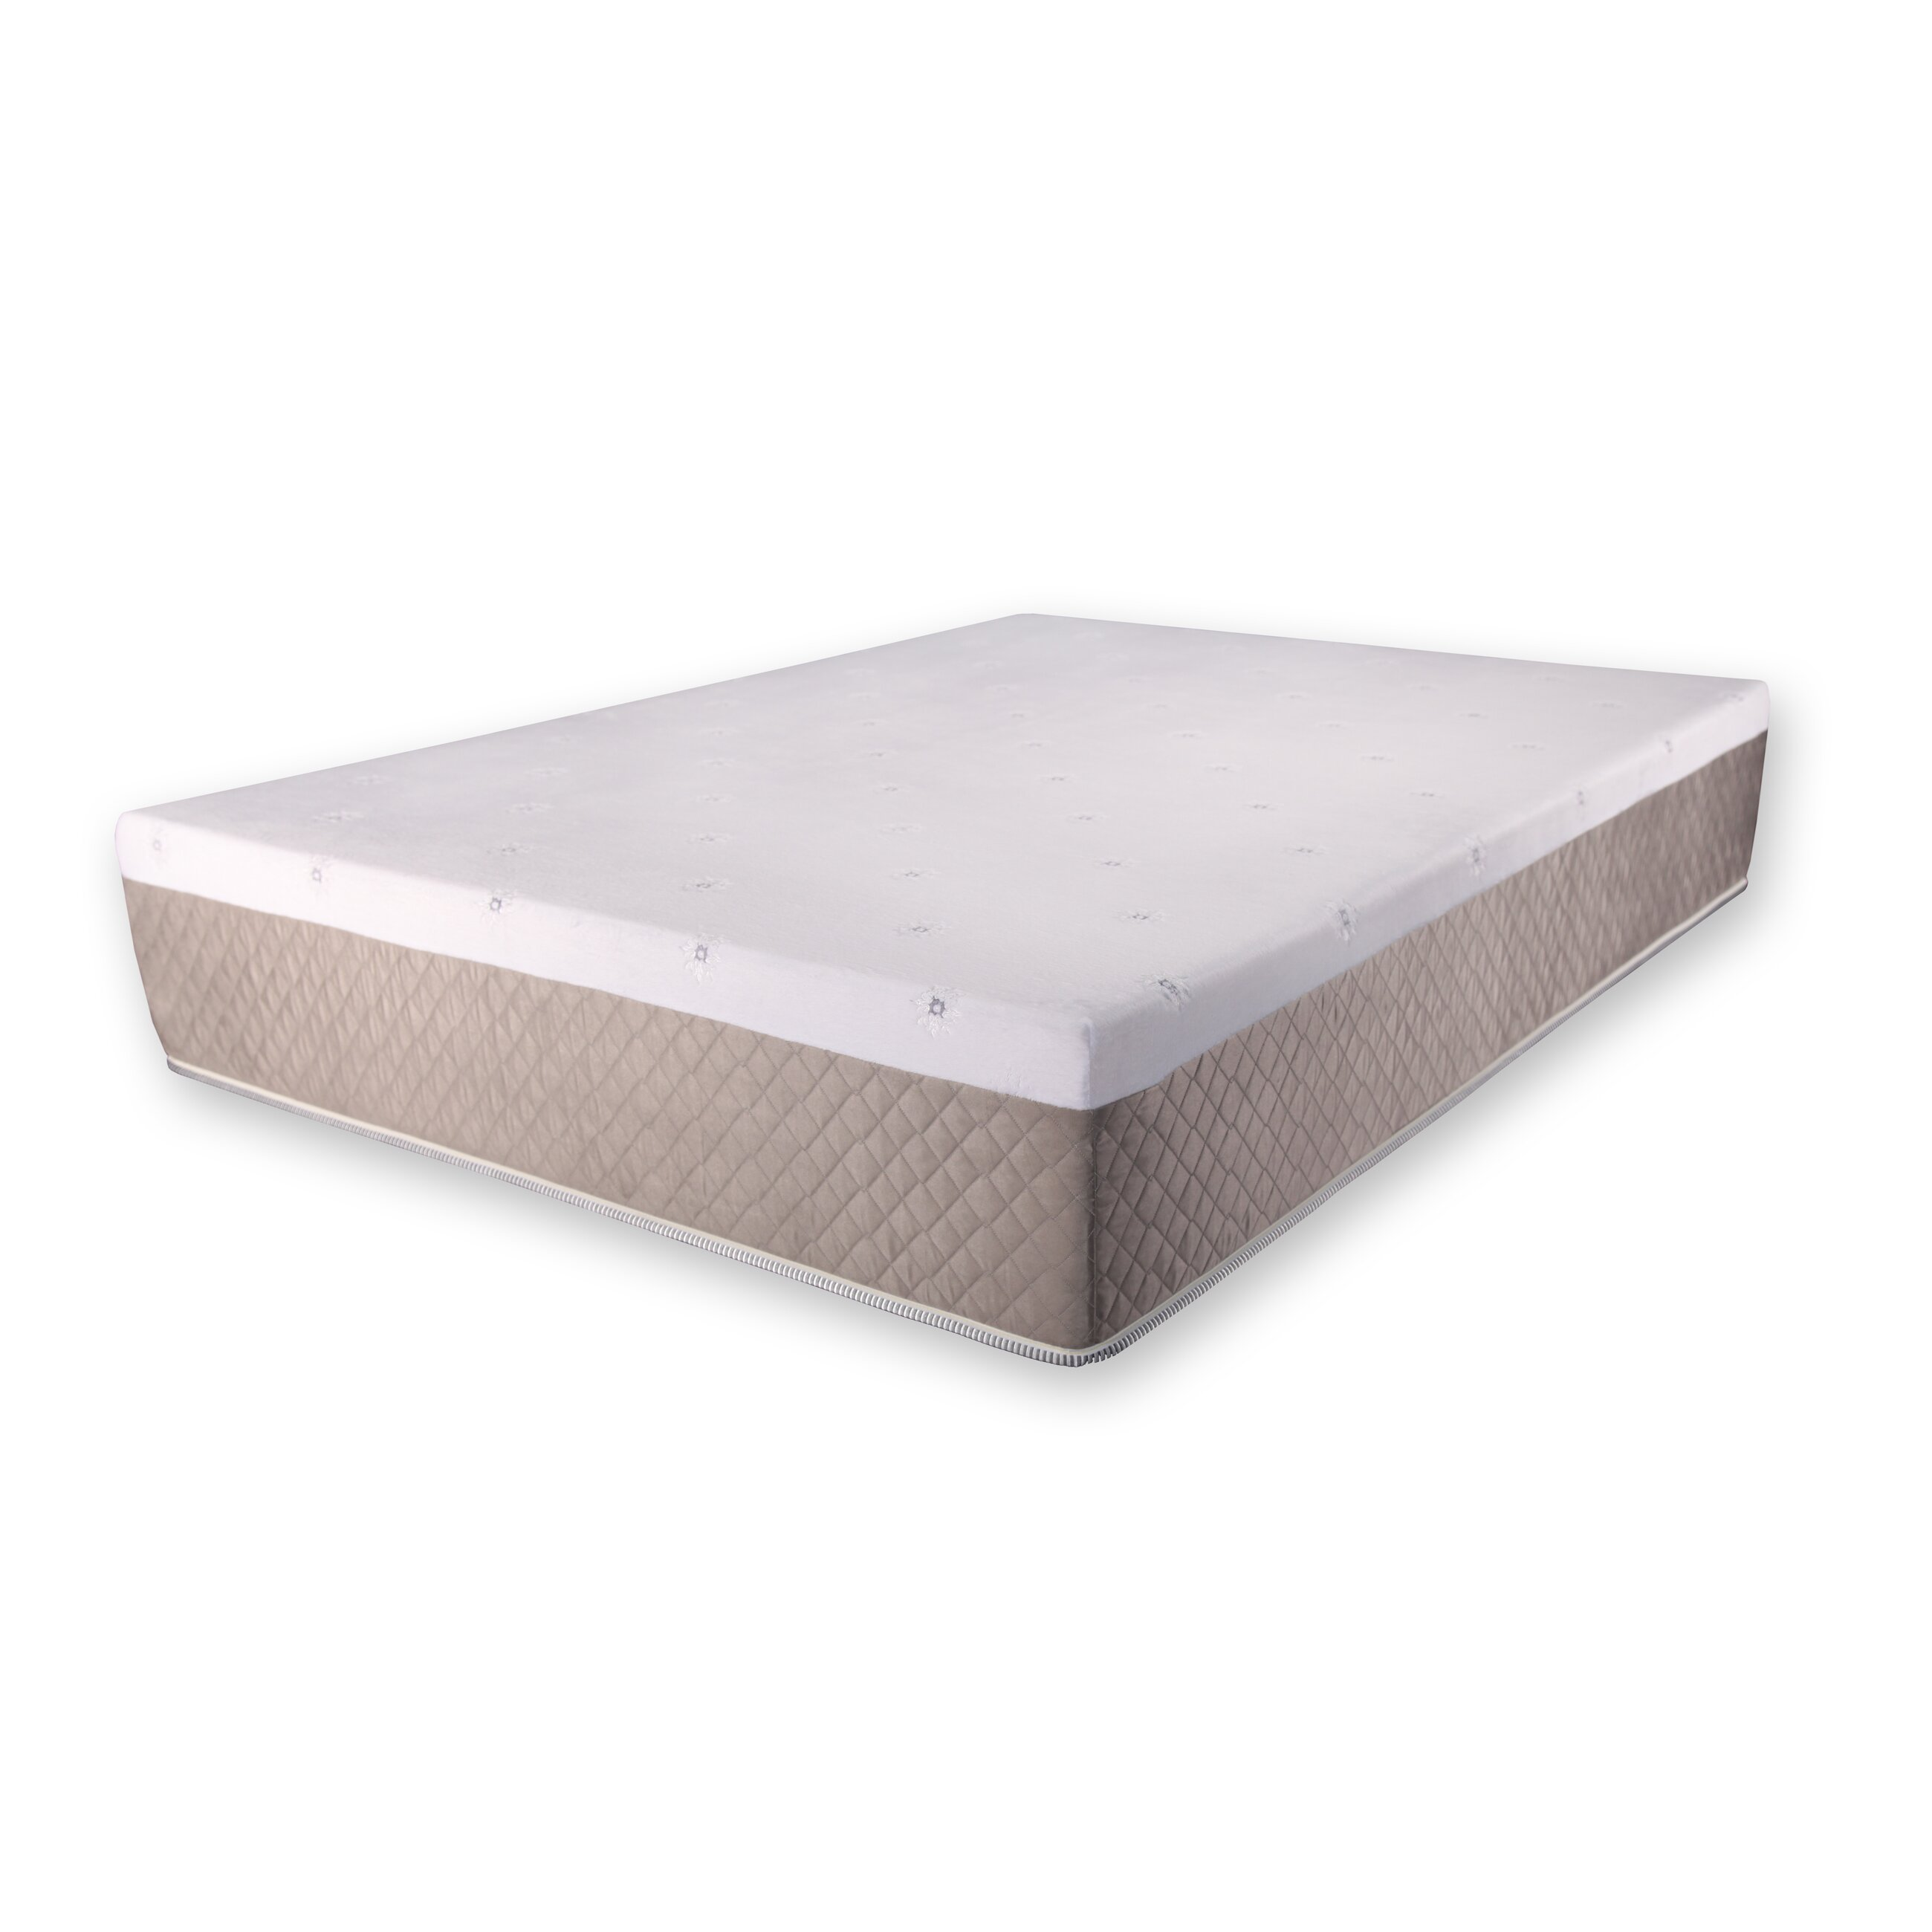 Dreamfoam Brooklyn Bedding Brooklyn Bedding Ultimate Dreams 13quot Gel Memory Foam